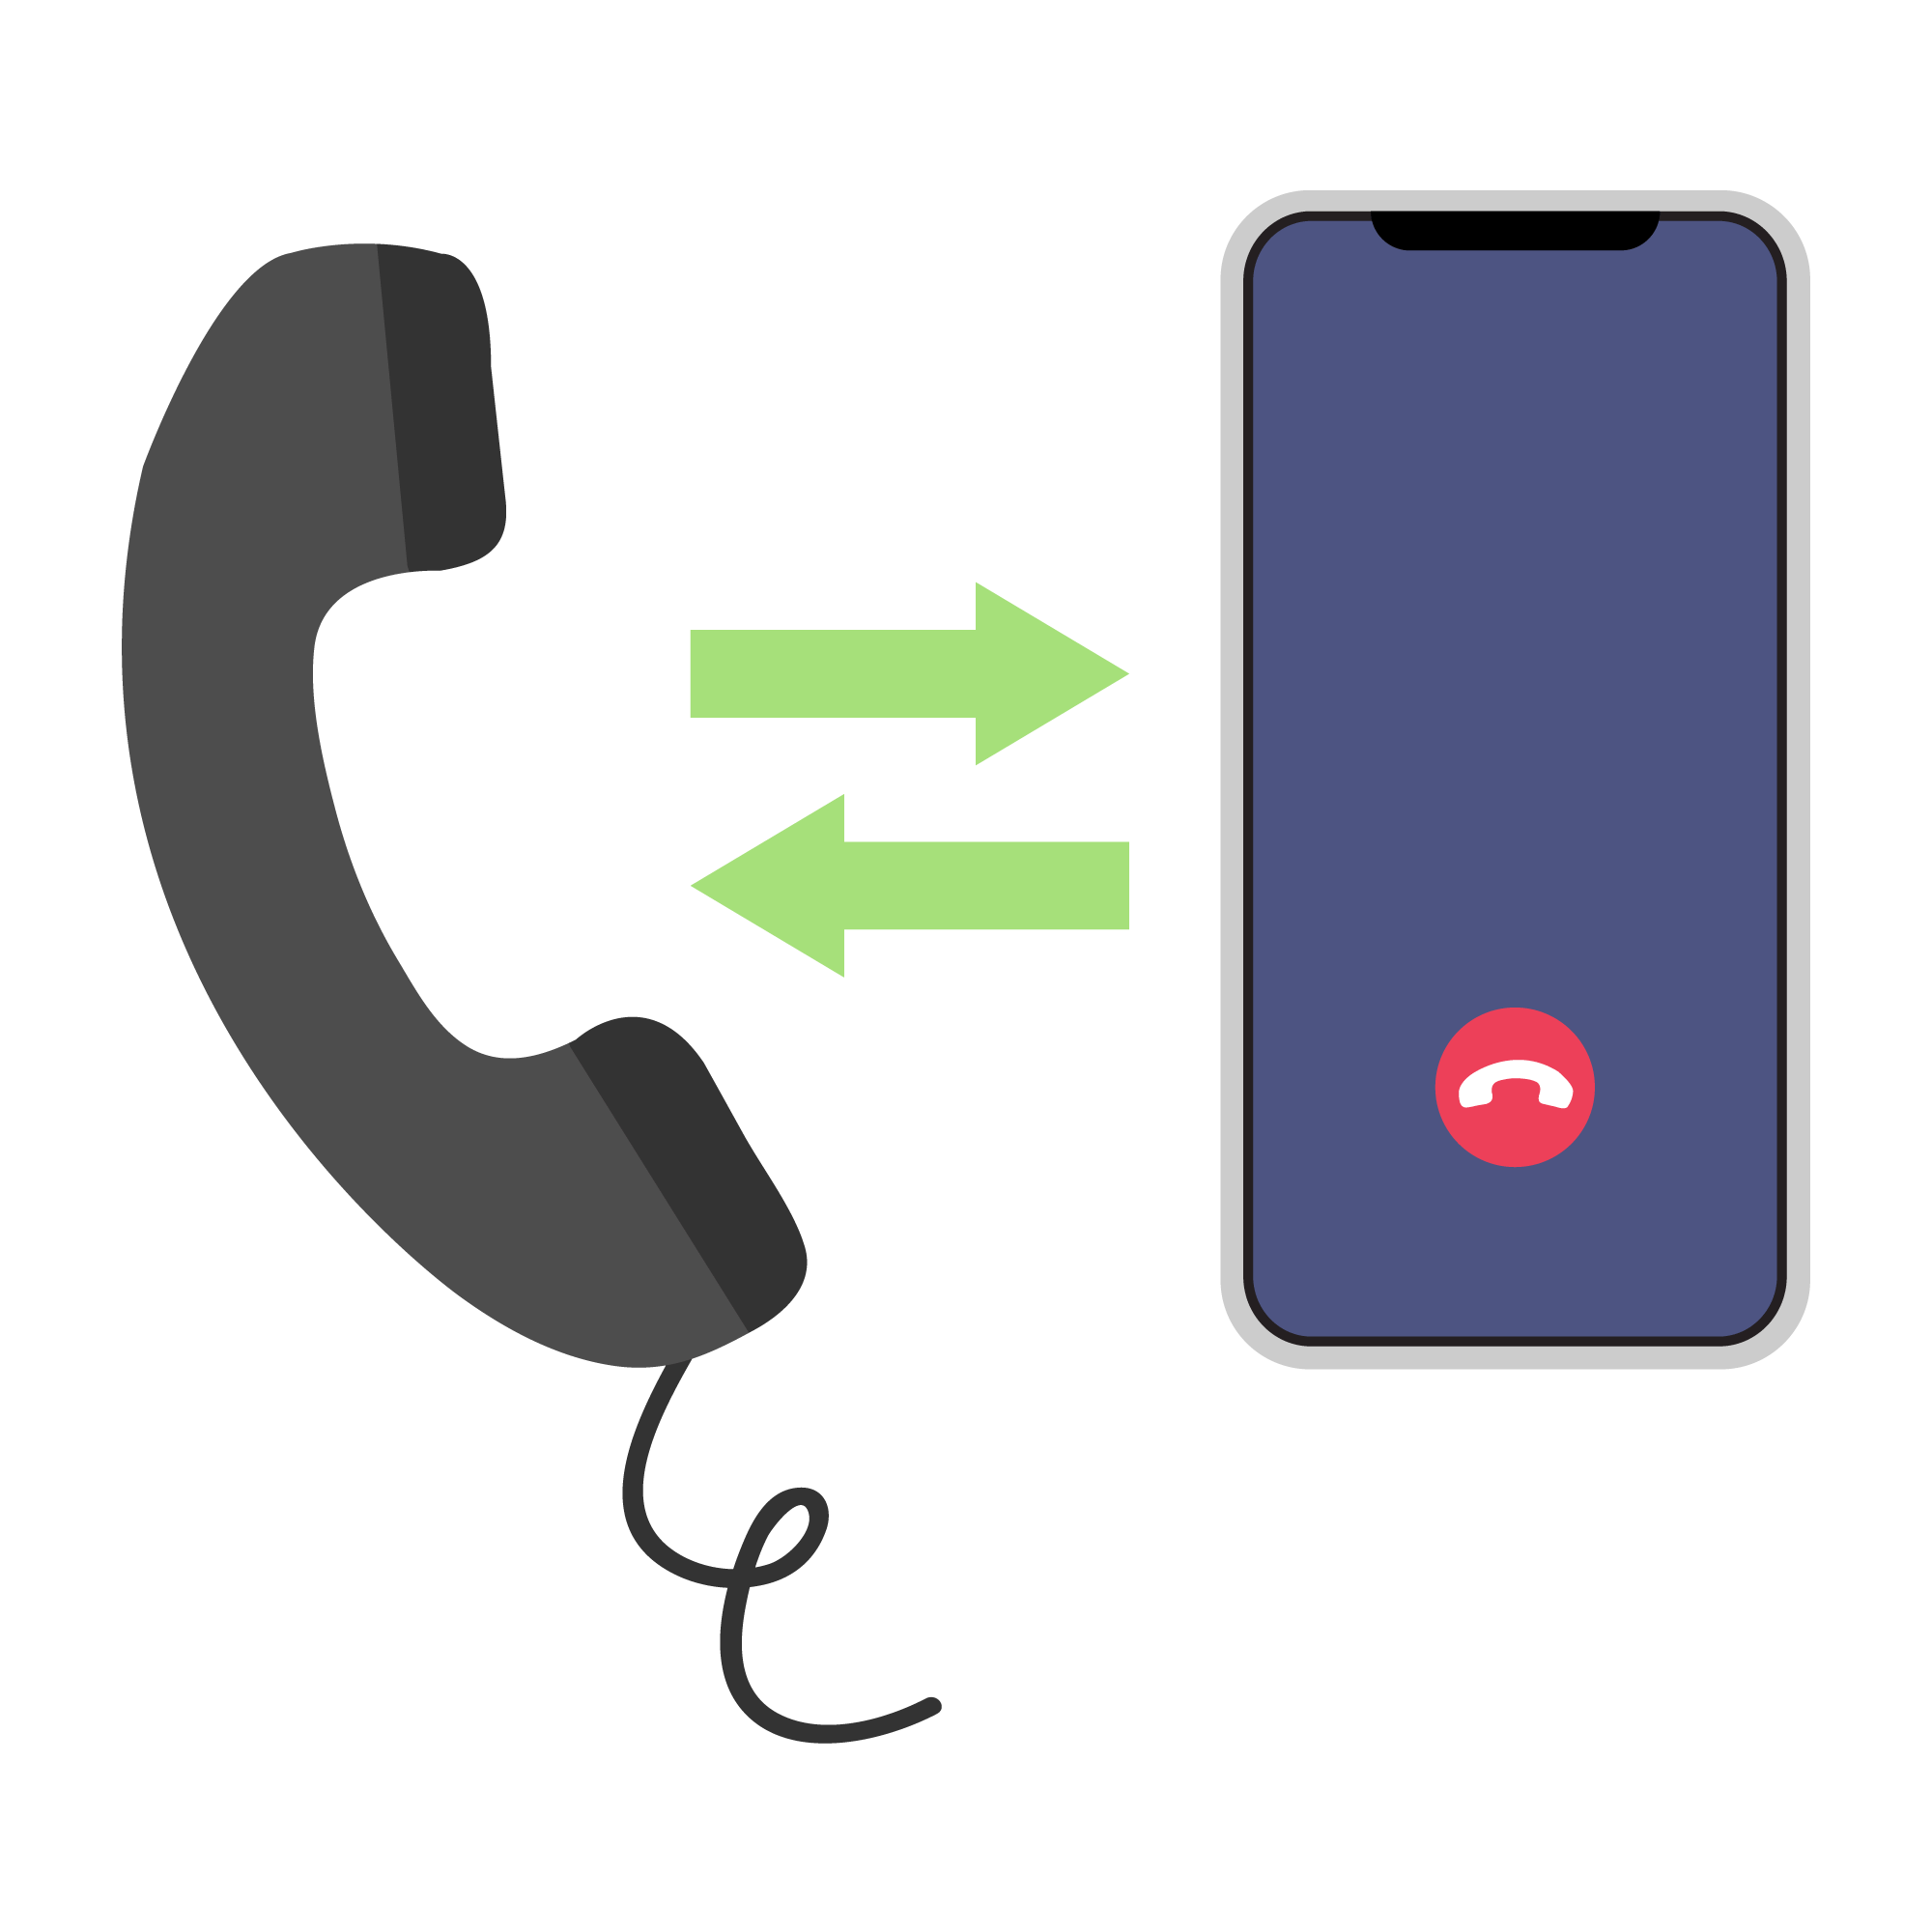 A call between a telephone and cellphone